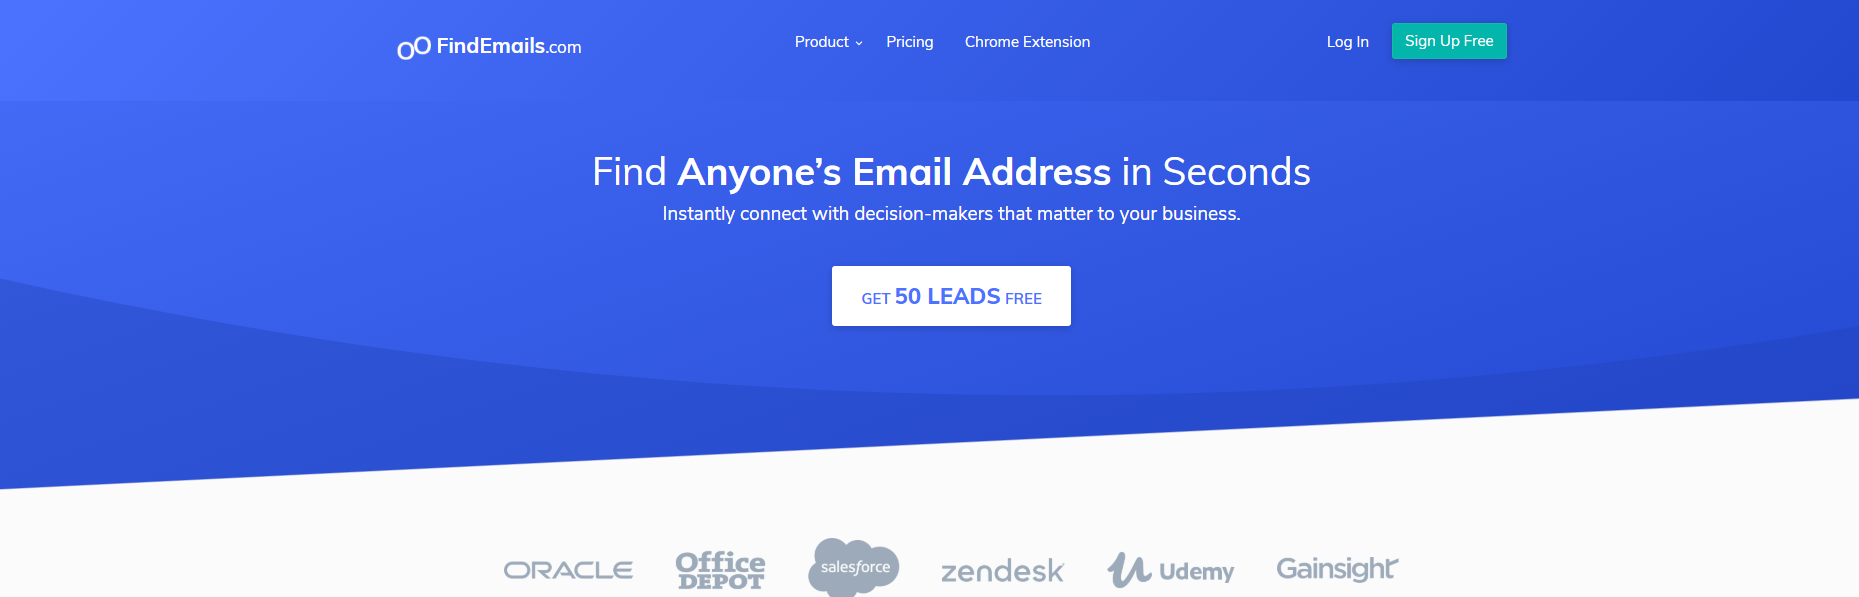 Email Finder - Top 20 Software Tools to Find Emails [Updated